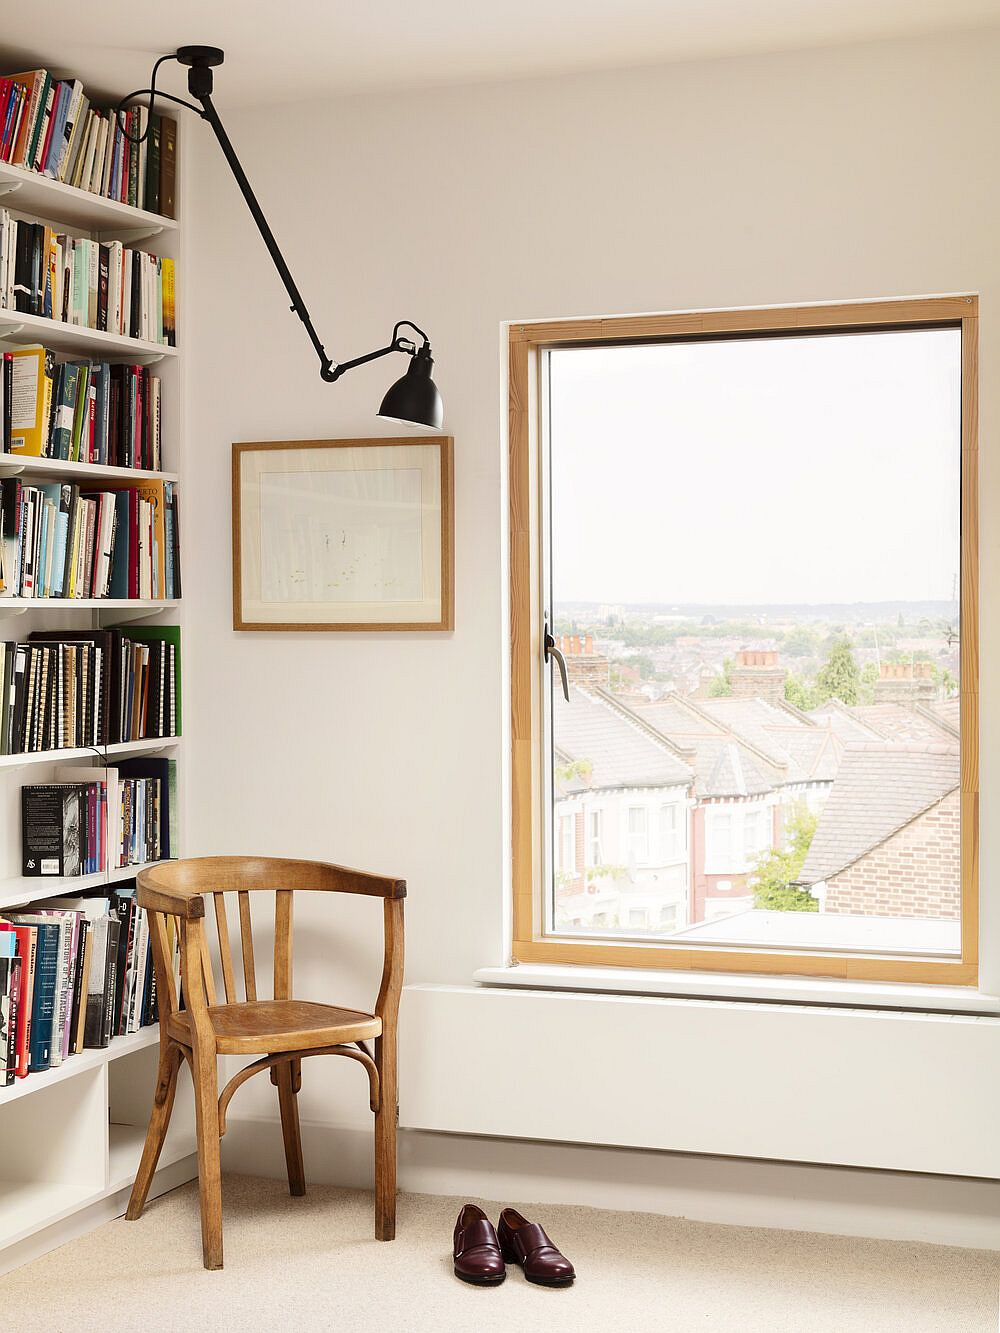 Home office and reading room on the upper level with natural light and flexible sconce light